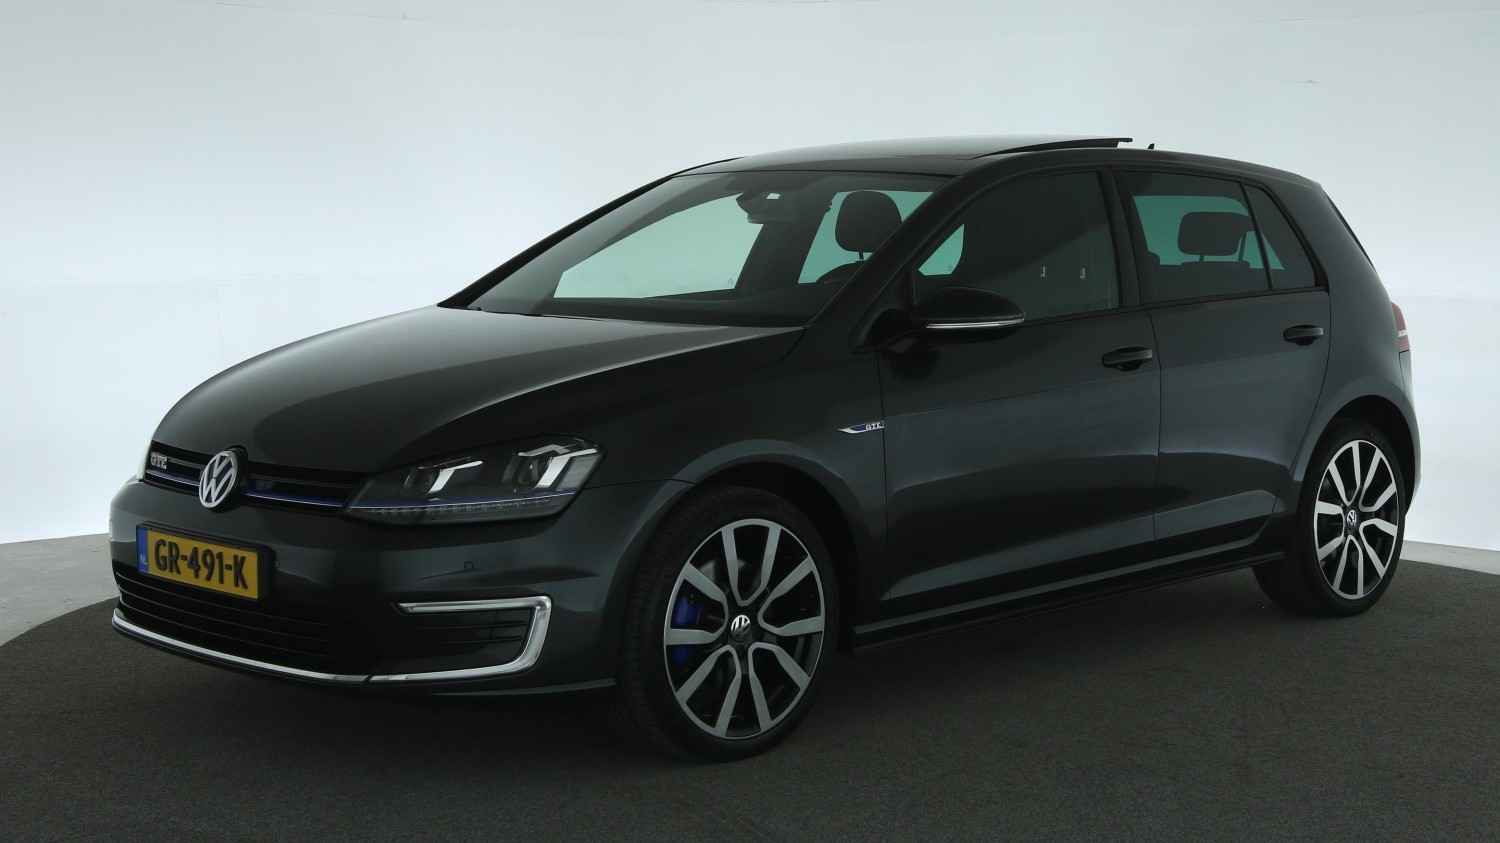 Volkswagen Golf Hatchback 2015 GR-491-K 1